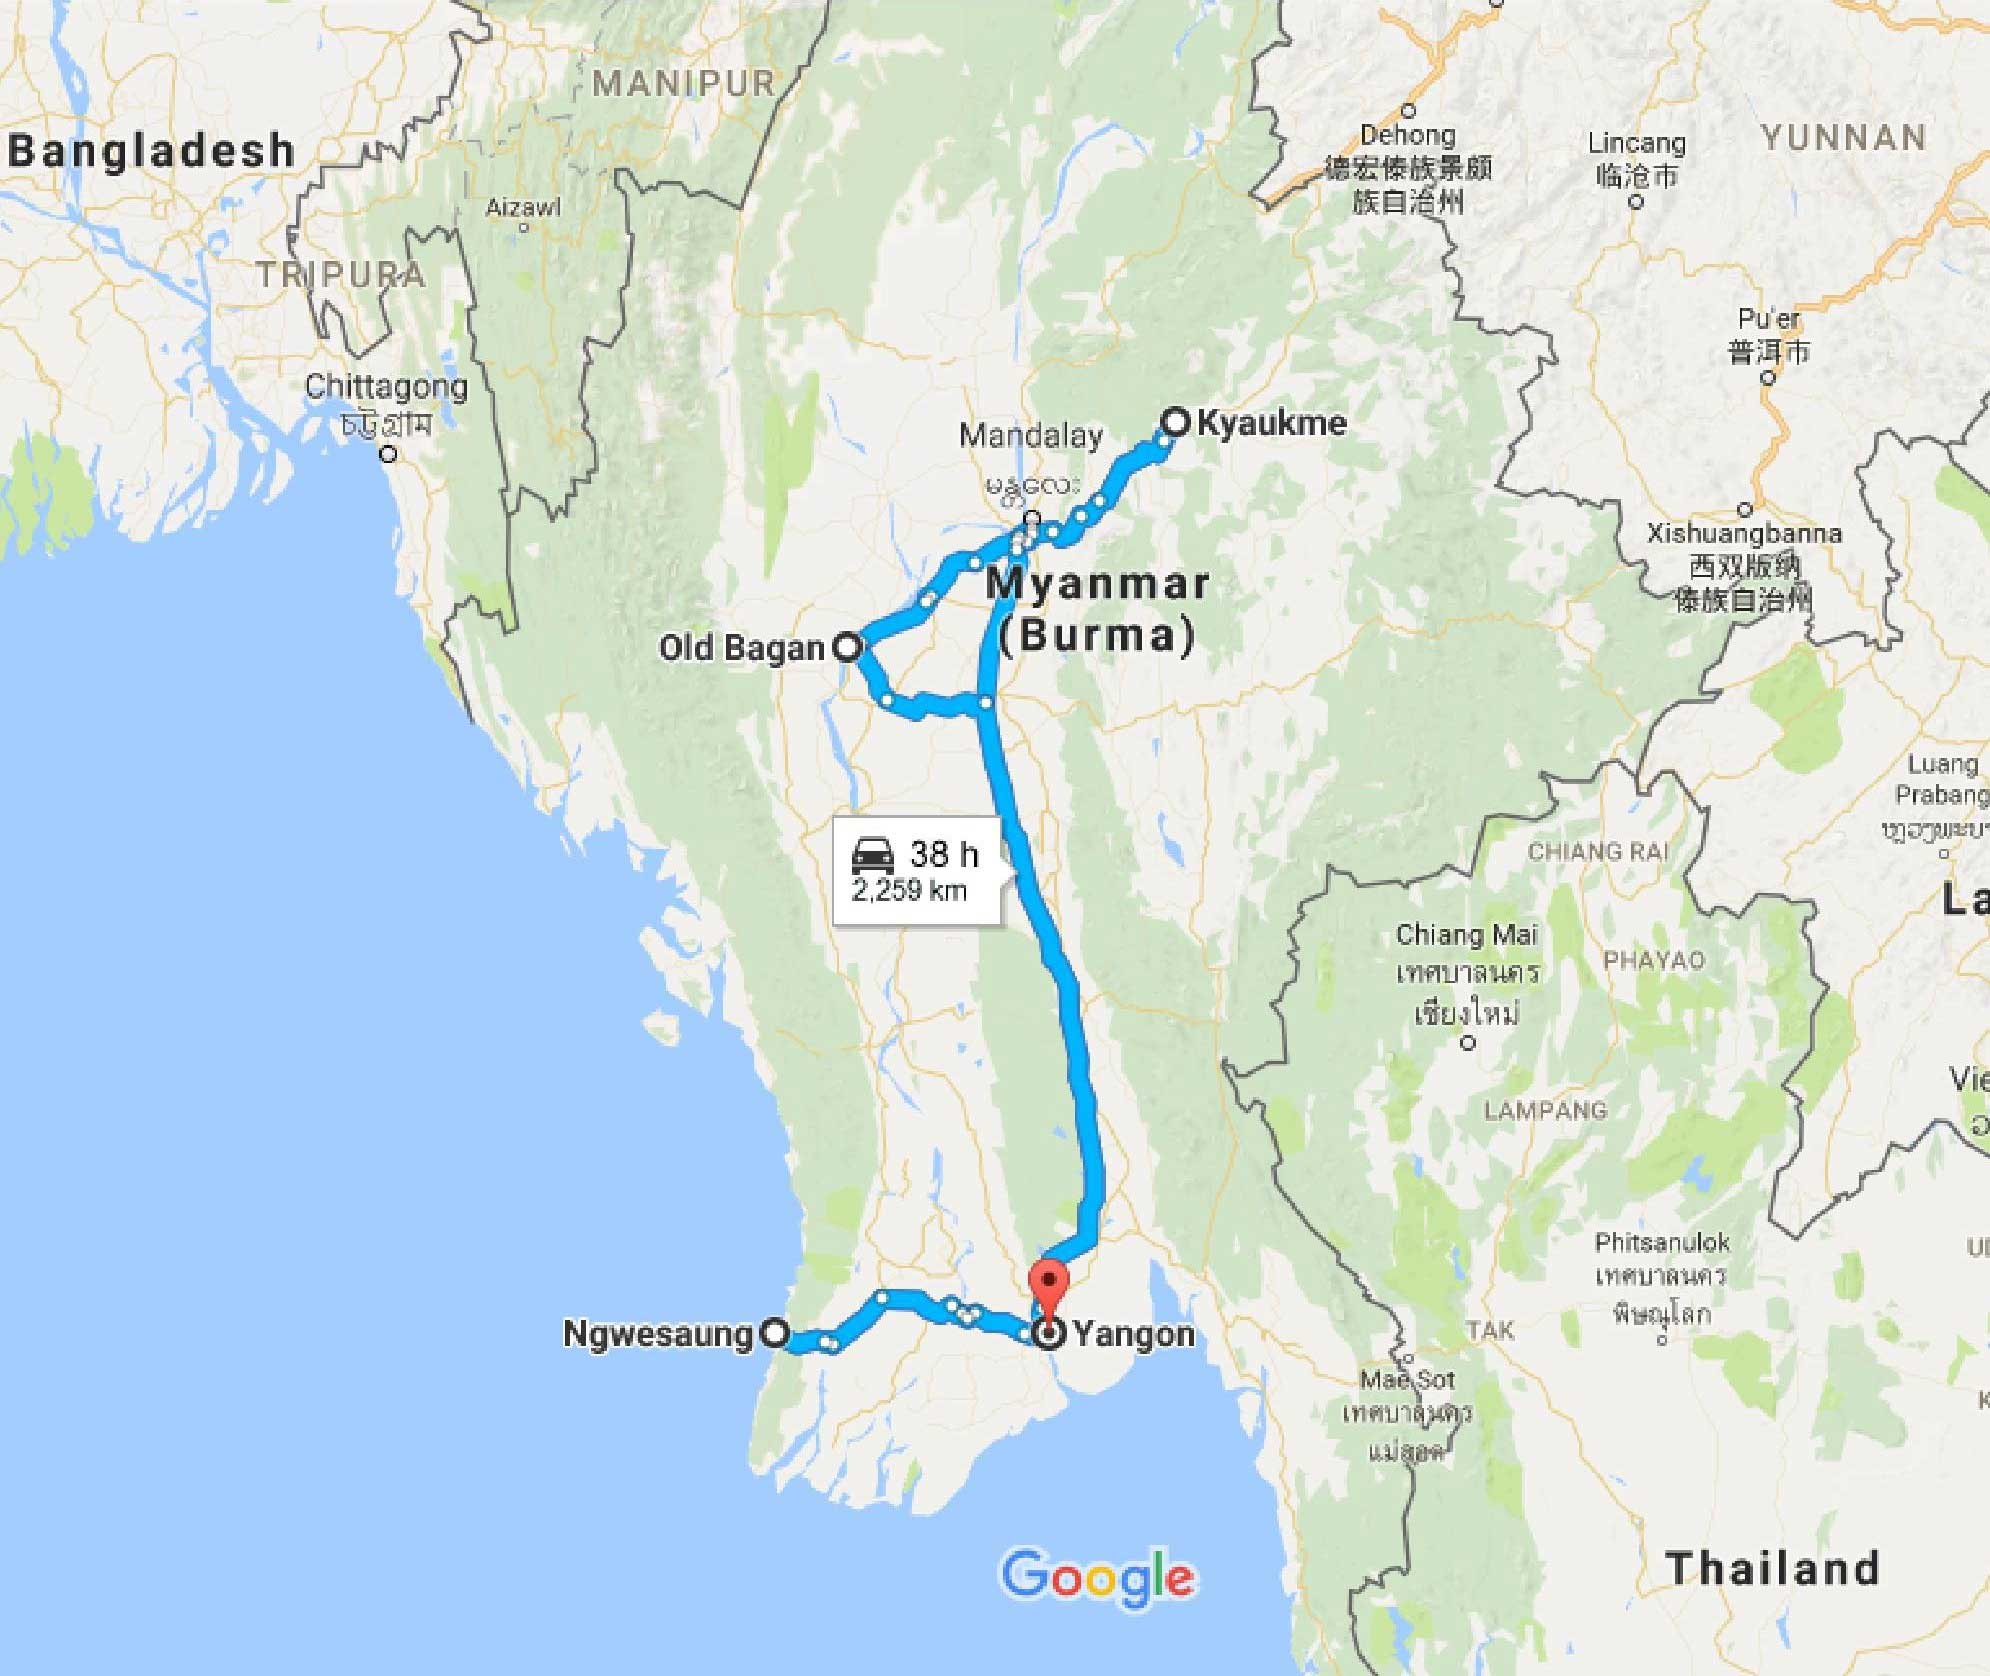 15 days in Myanmar: map, itinerary and costs